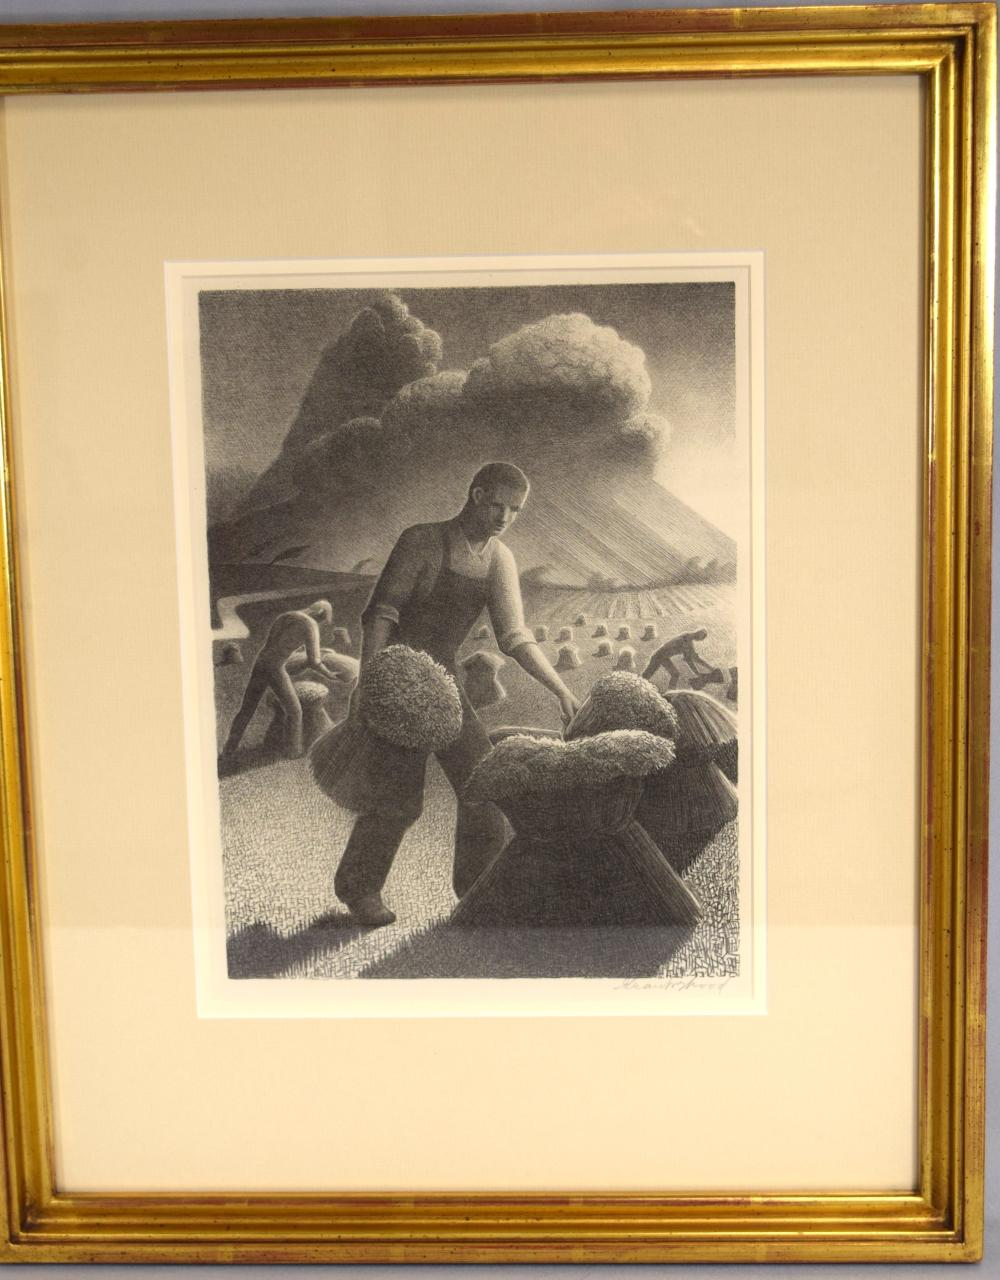 """GRANT WOOD SIGNED LITHOGRAPH """"APPROACHING STORM""""."""